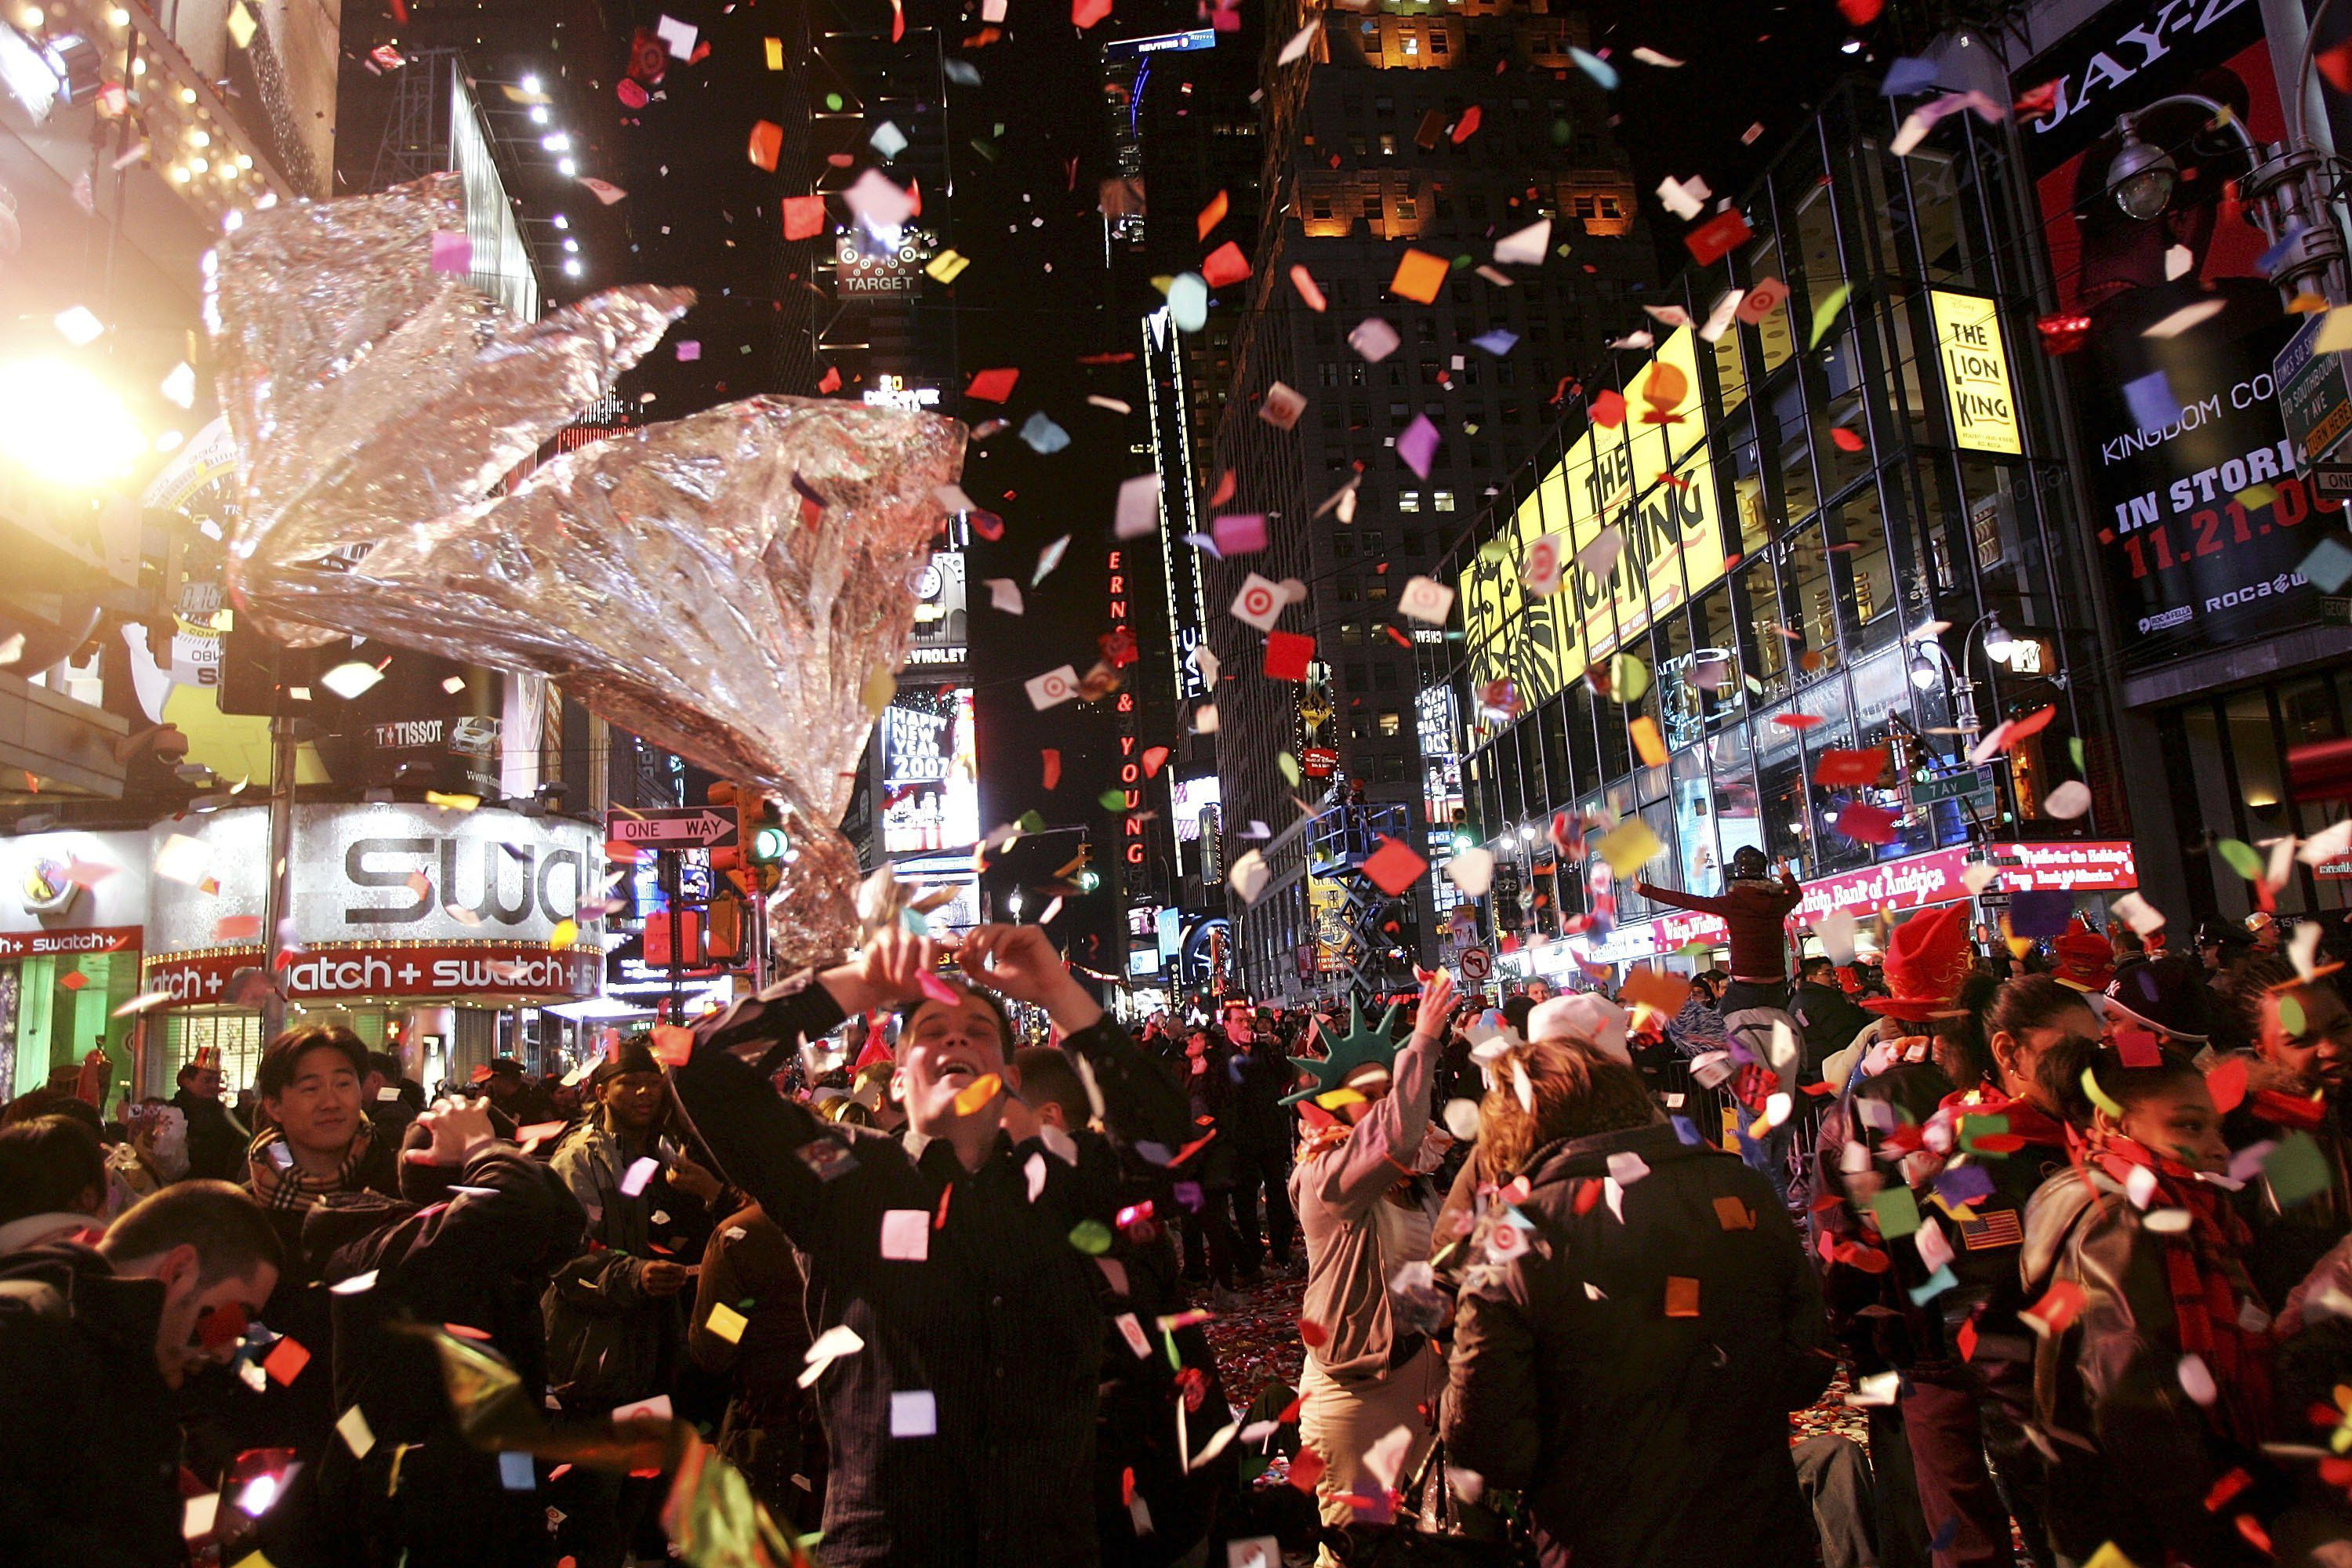 Celebrating New Year's Eve in Times Square